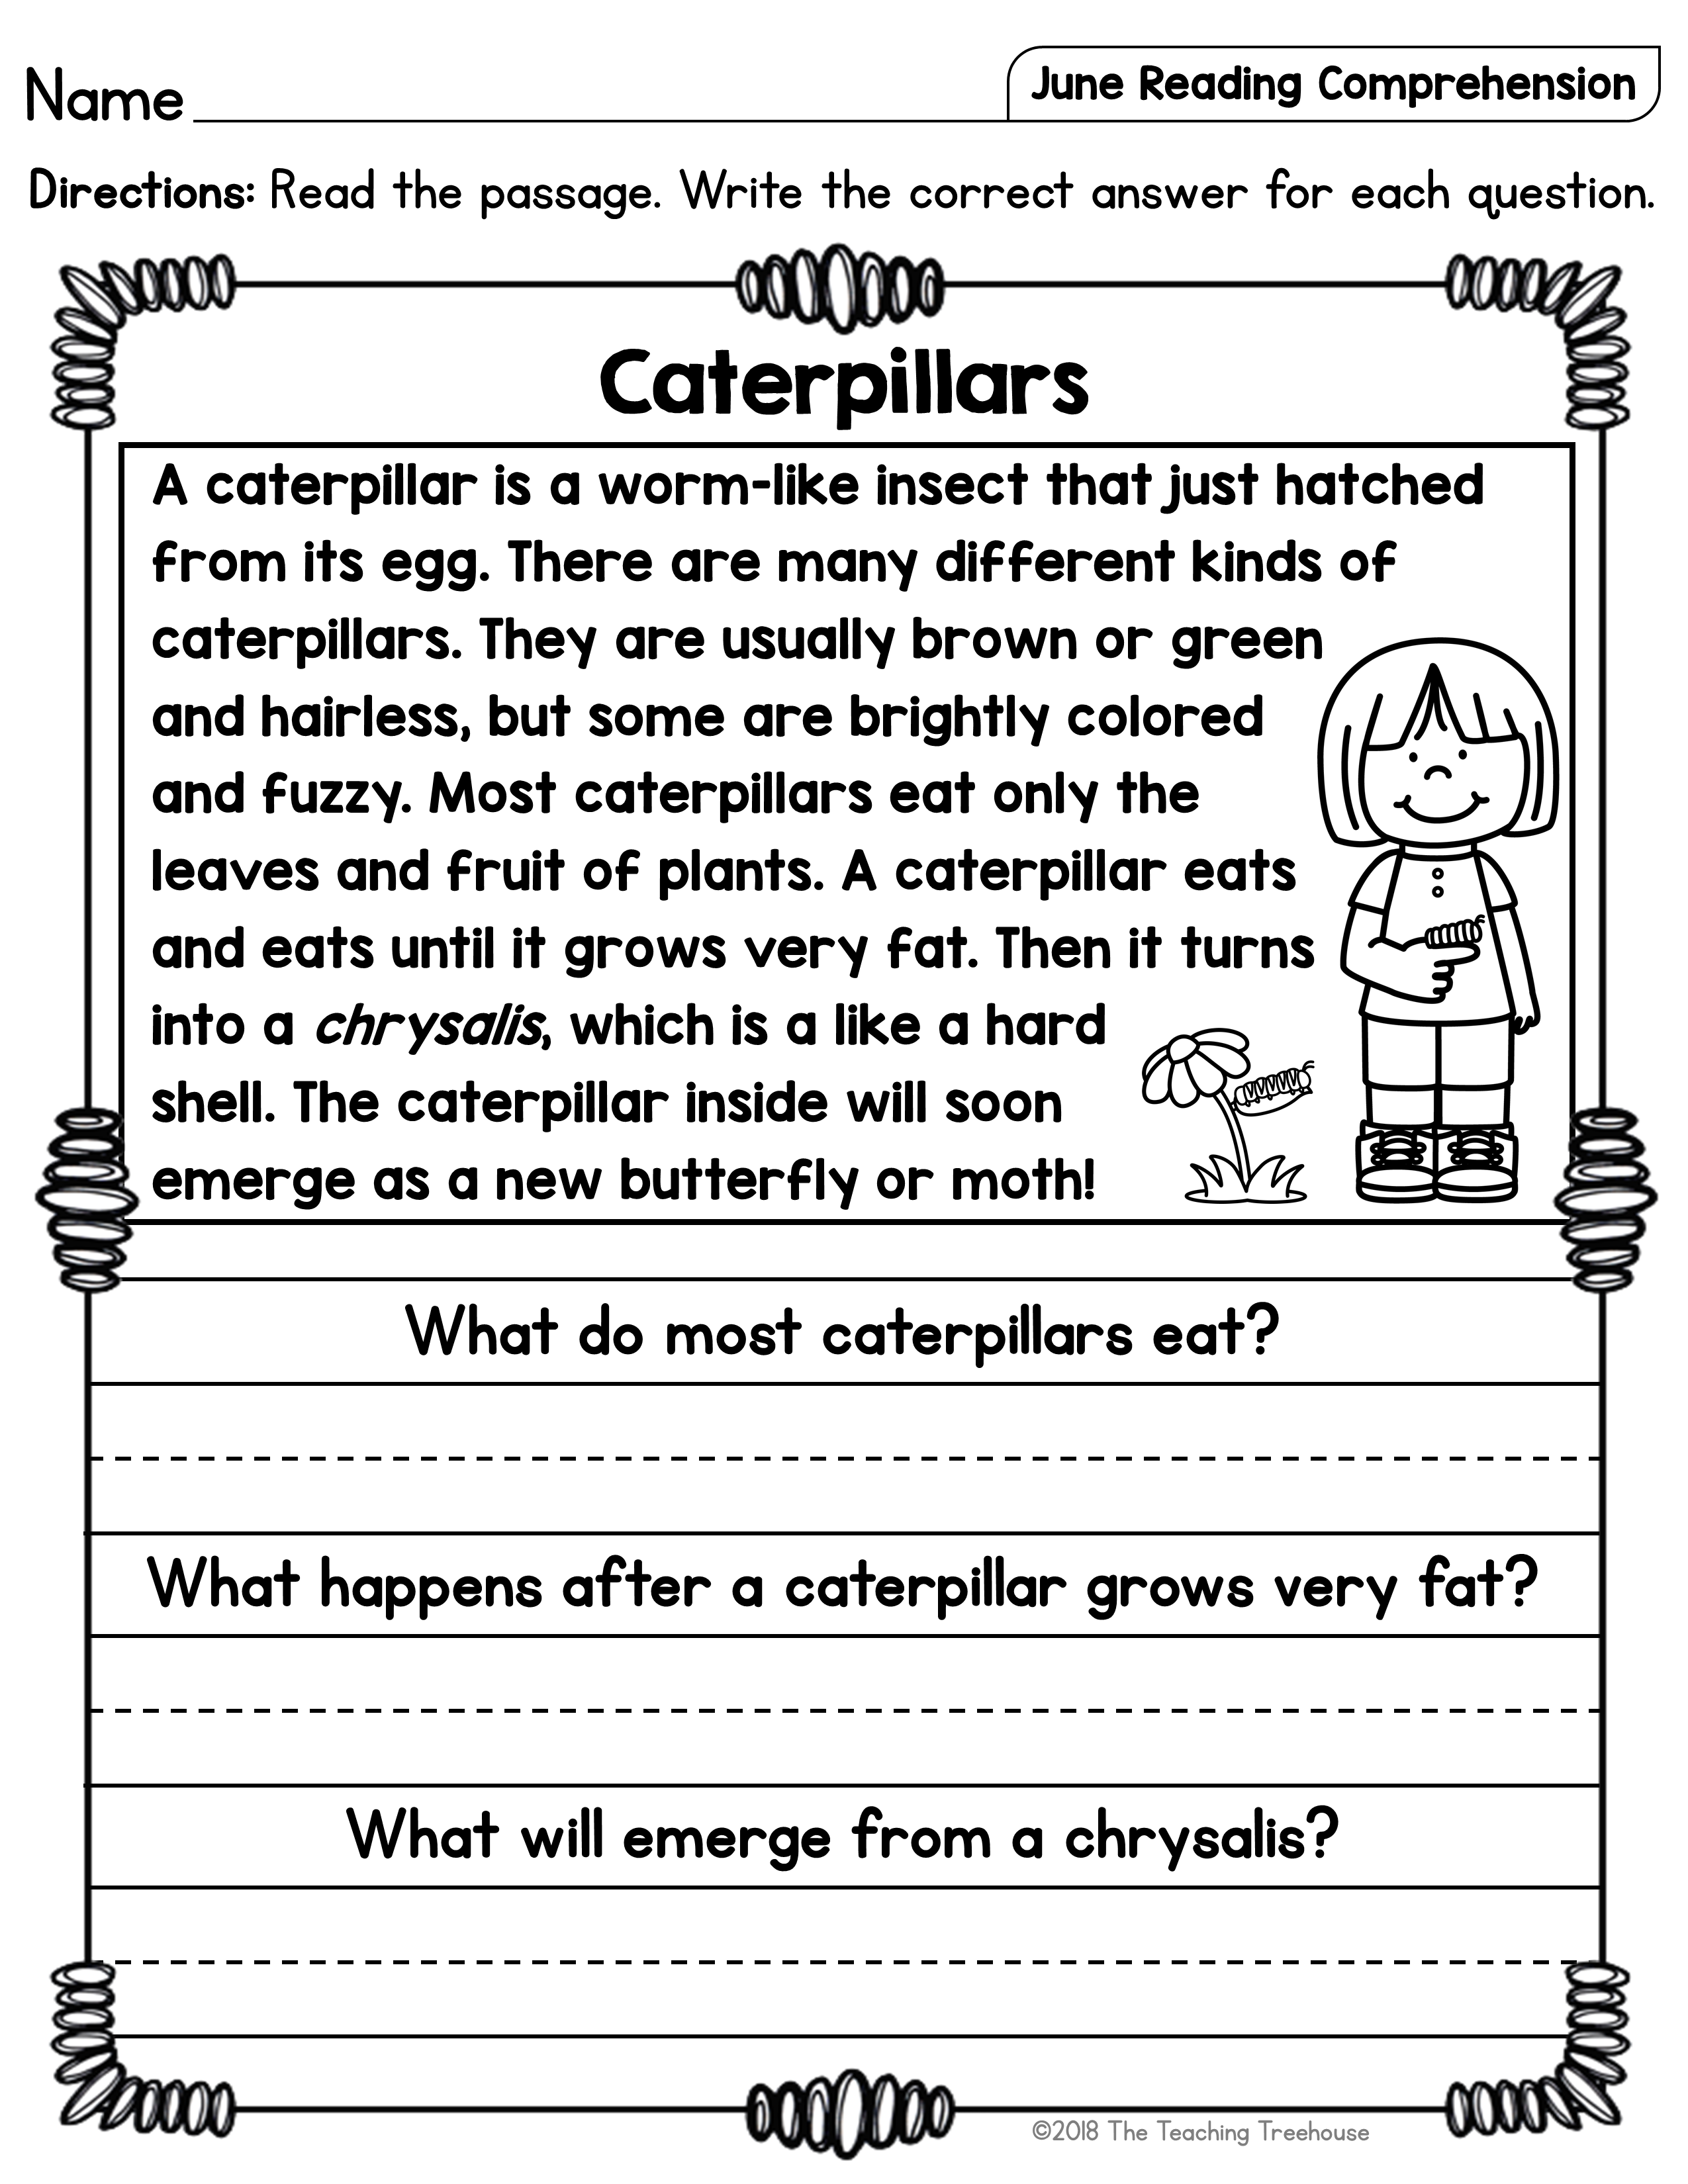 June Reading Comprehension Passages For Kindergarten And